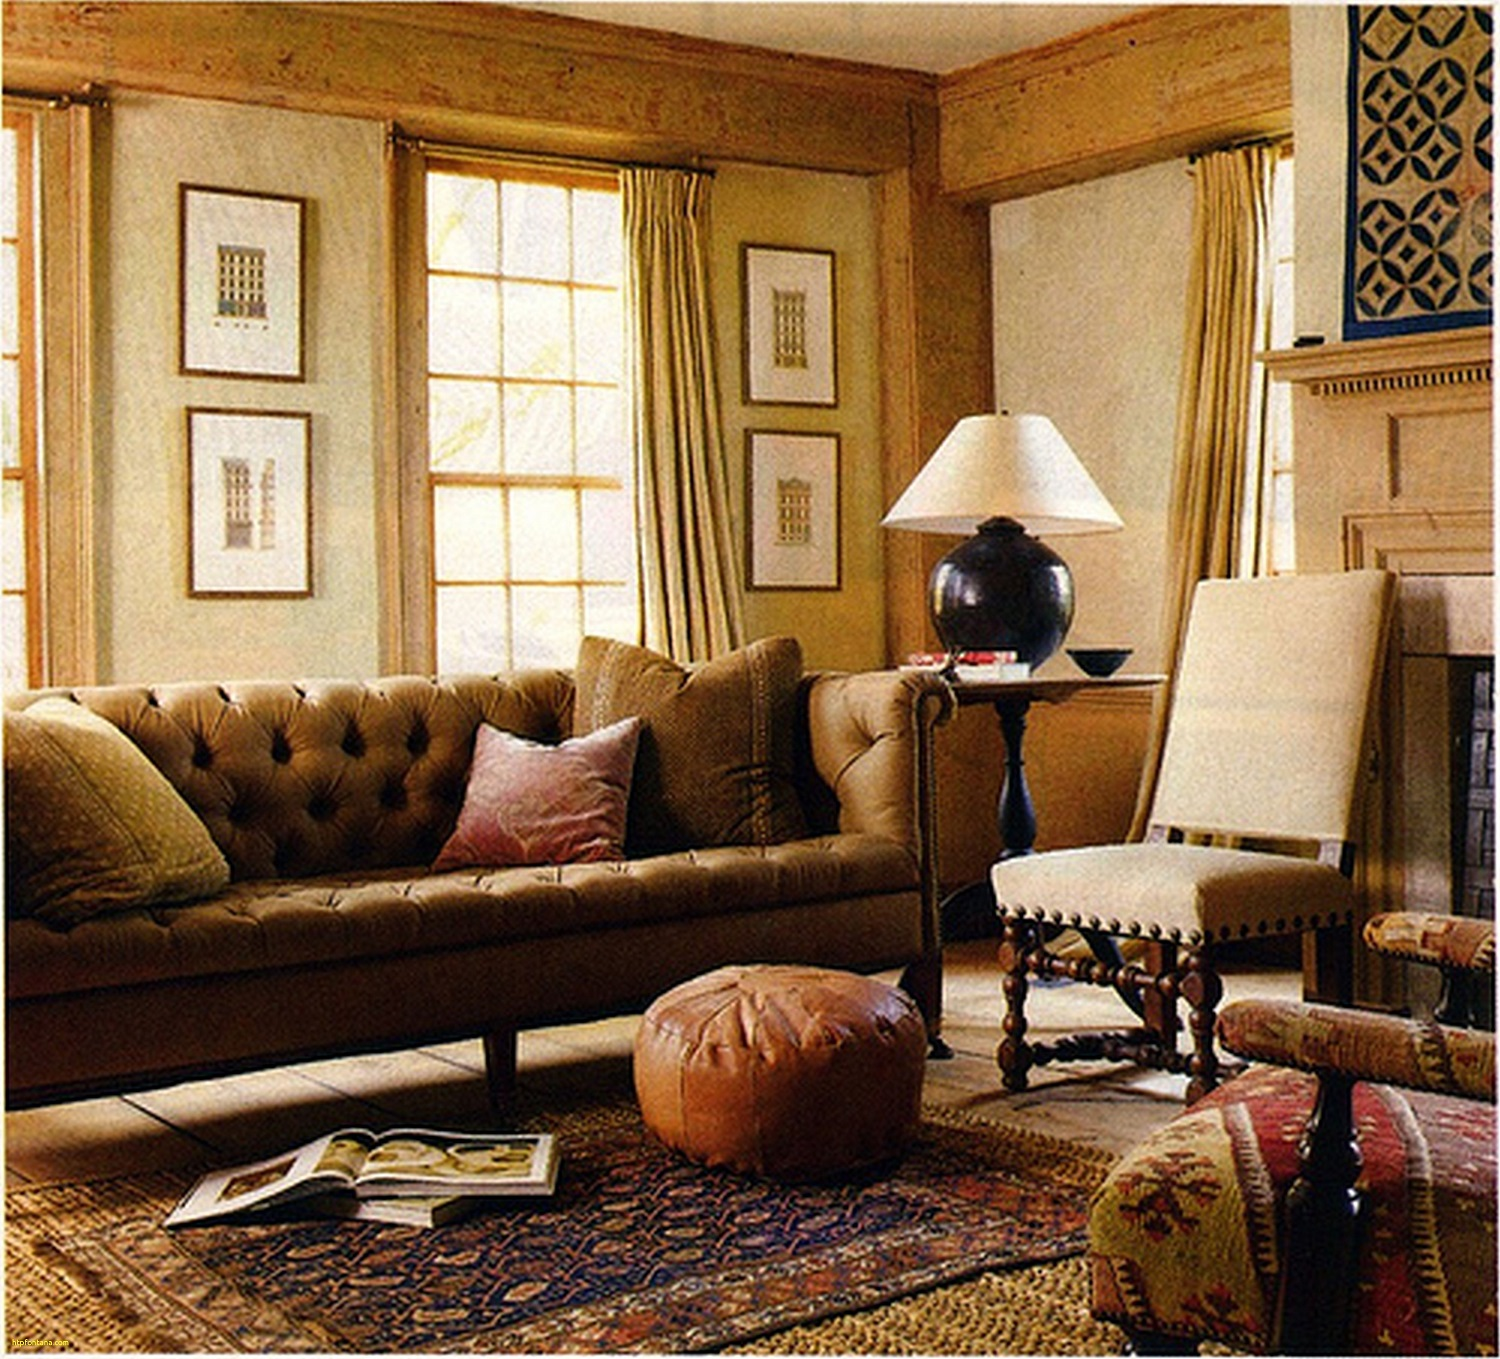 Tips to decorate your living rooms for autumn winter Pic 6